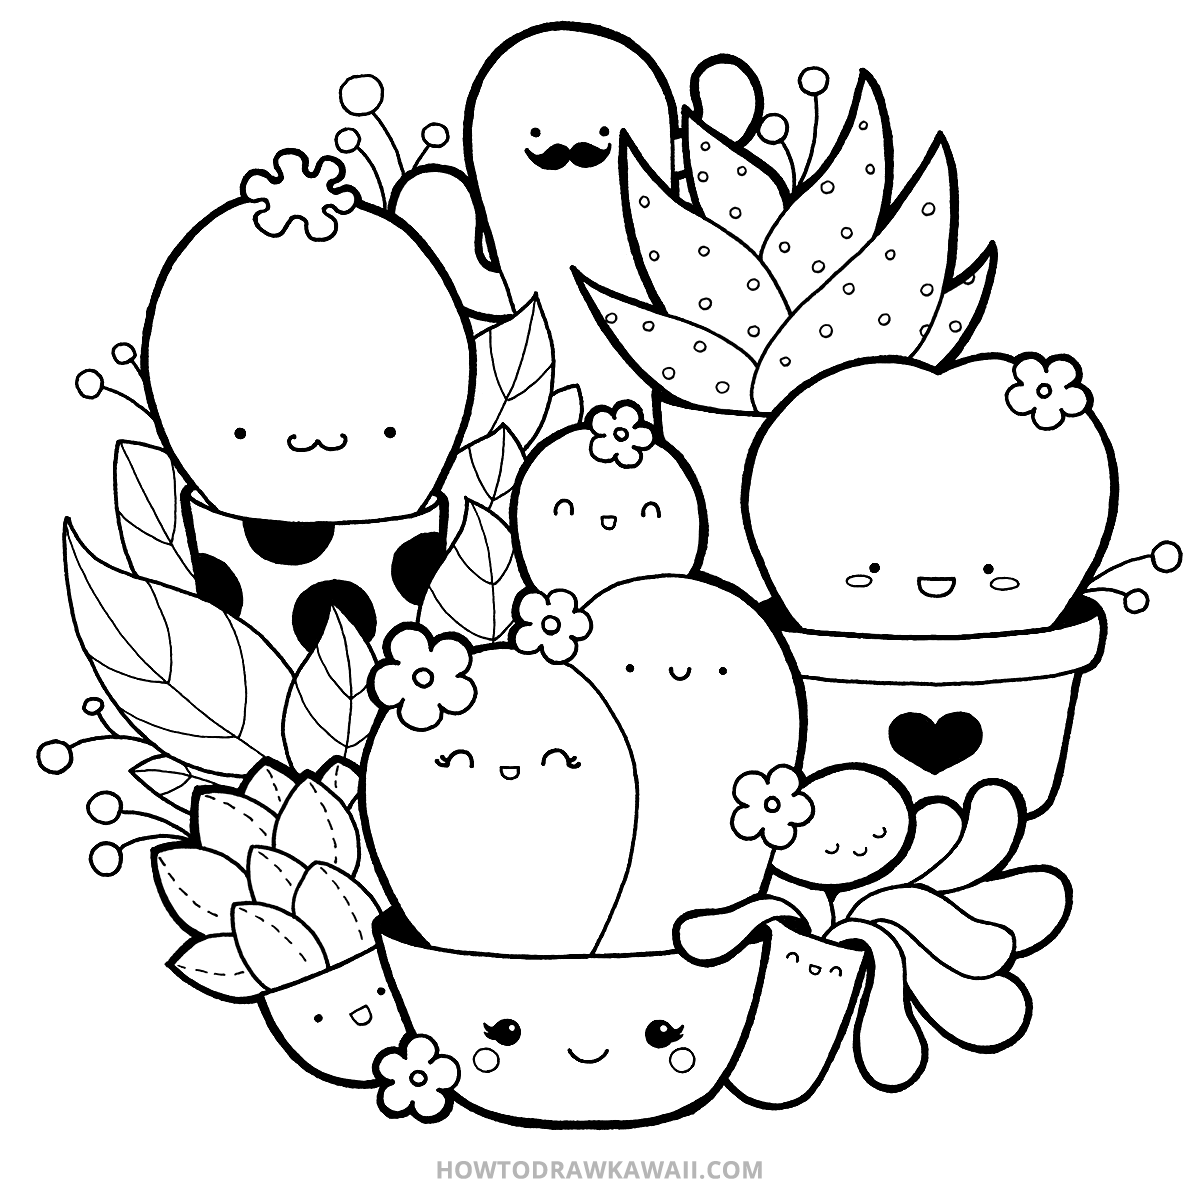 Easy Drawing How To Draw Kawaii Succulents Kawaii Doodle